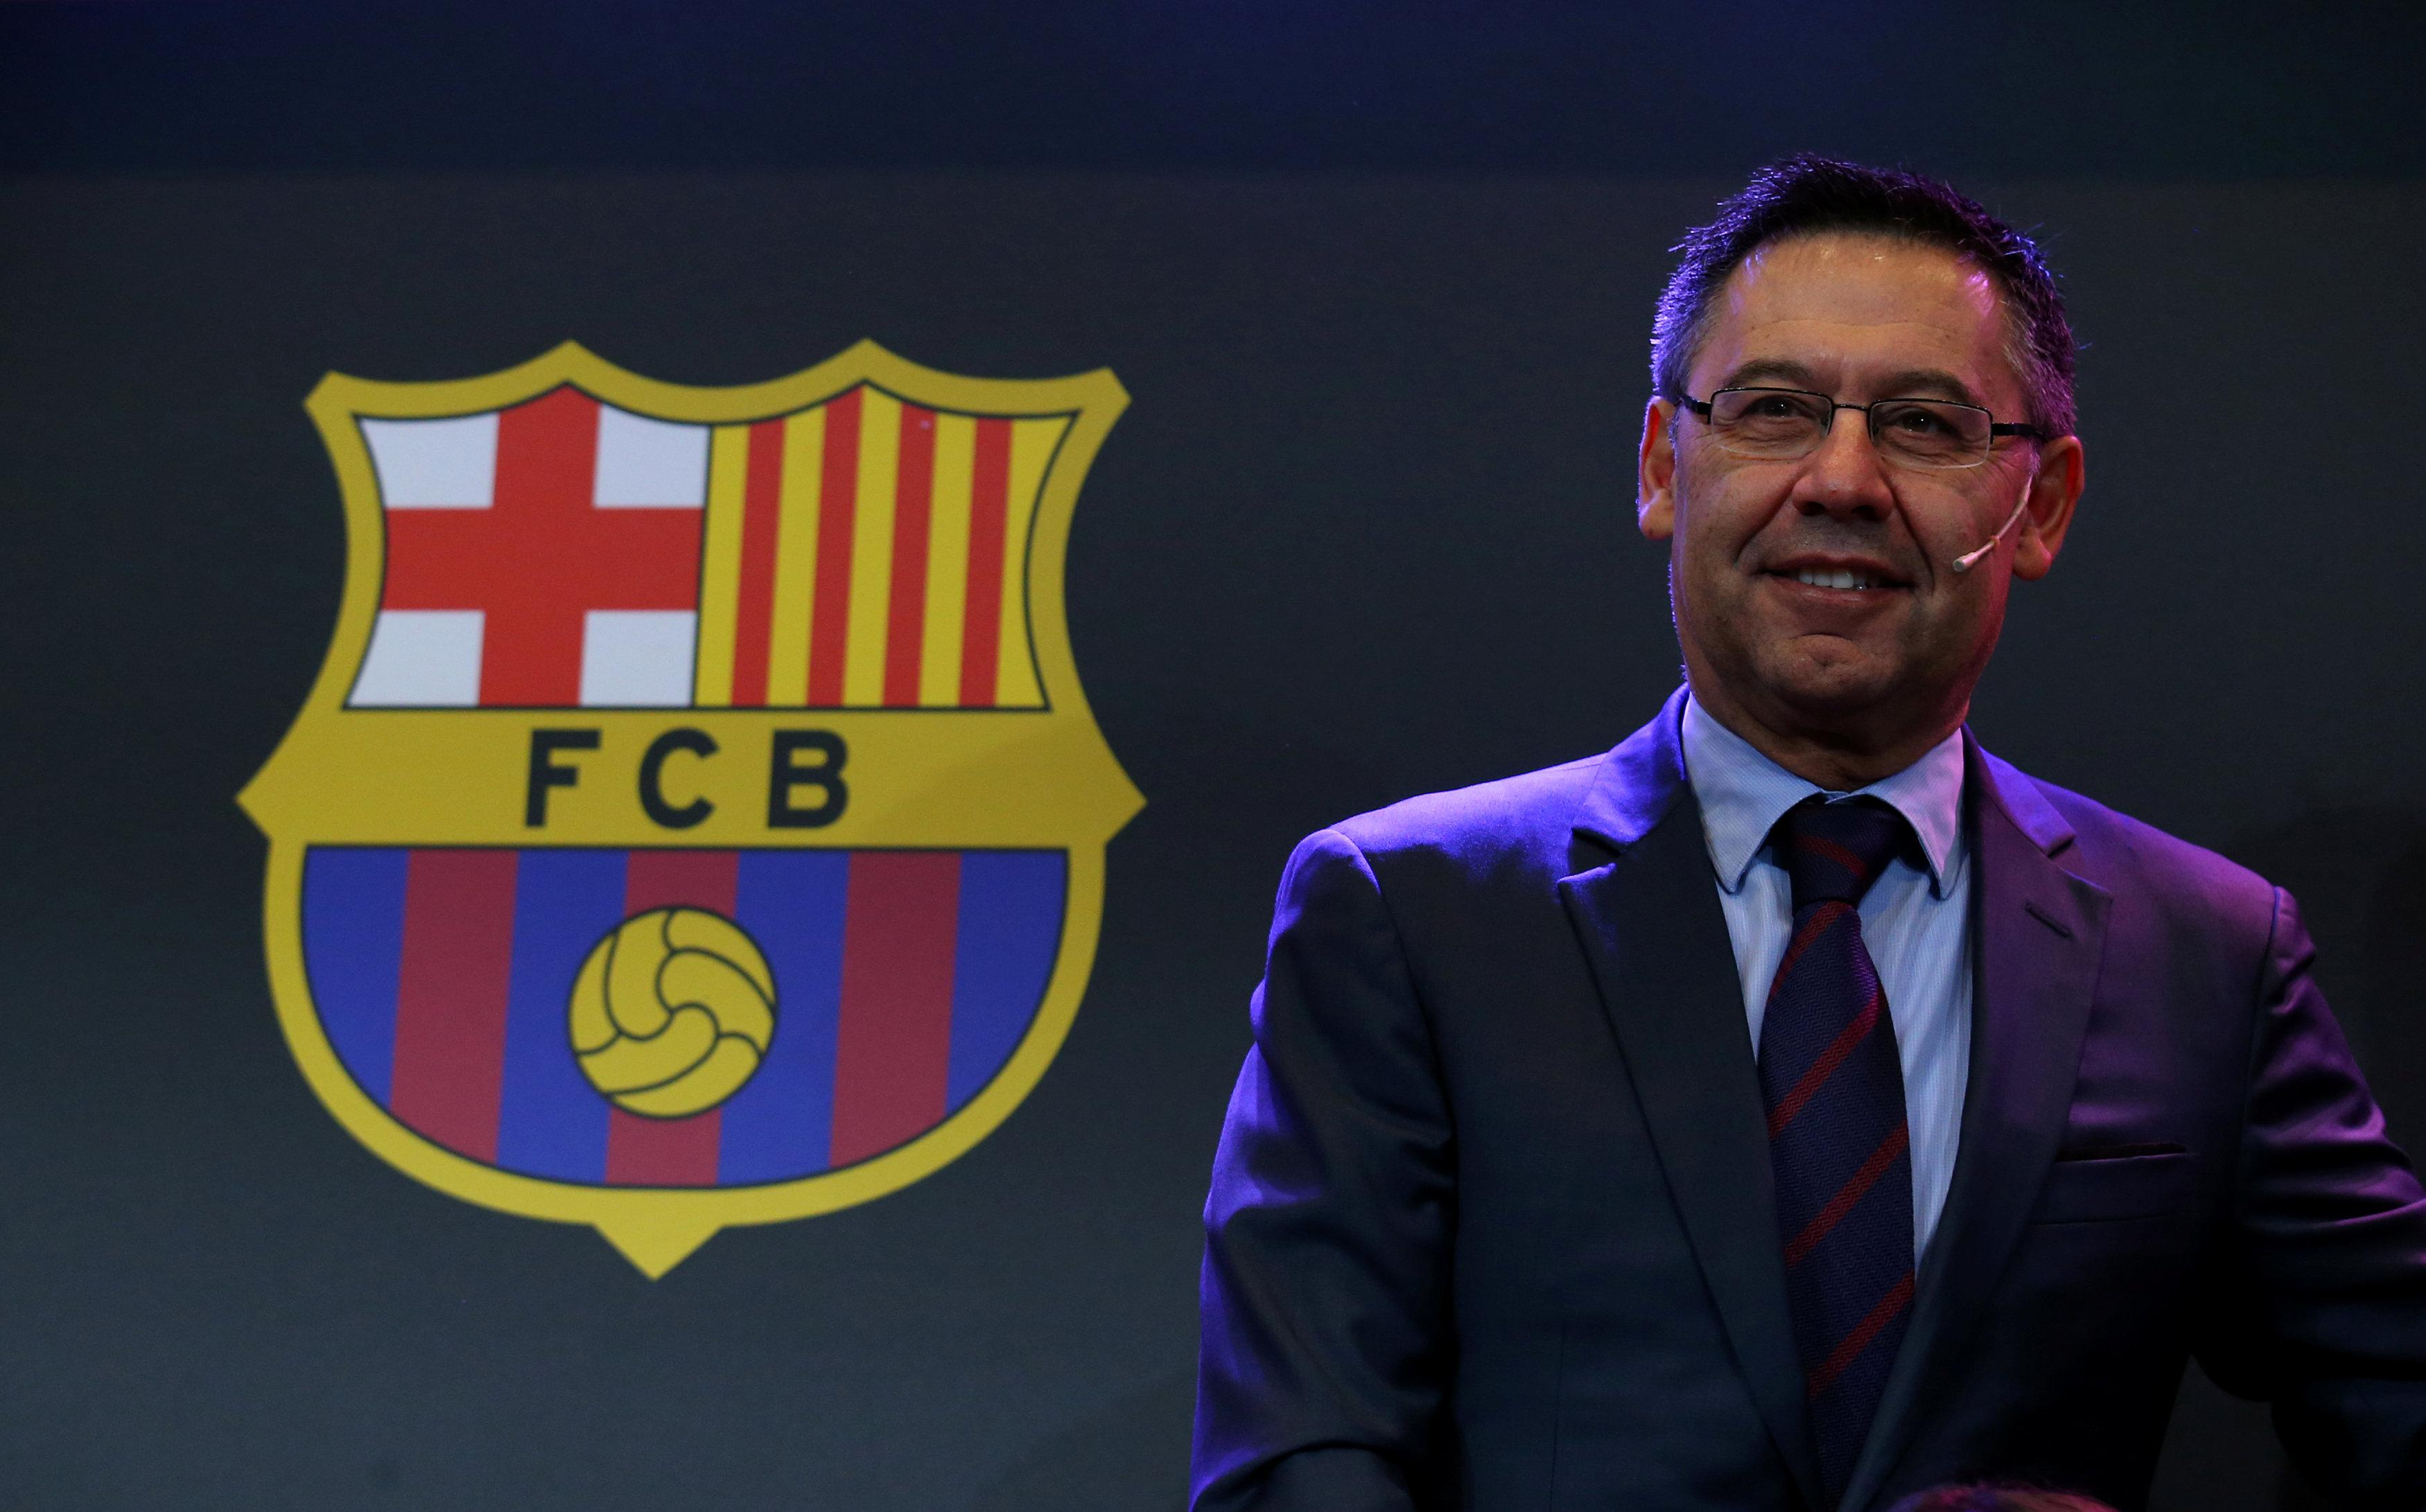 Barca president Josep Maria Bartomeu is to oversee a first - rugby league taking place in the Nou Camp